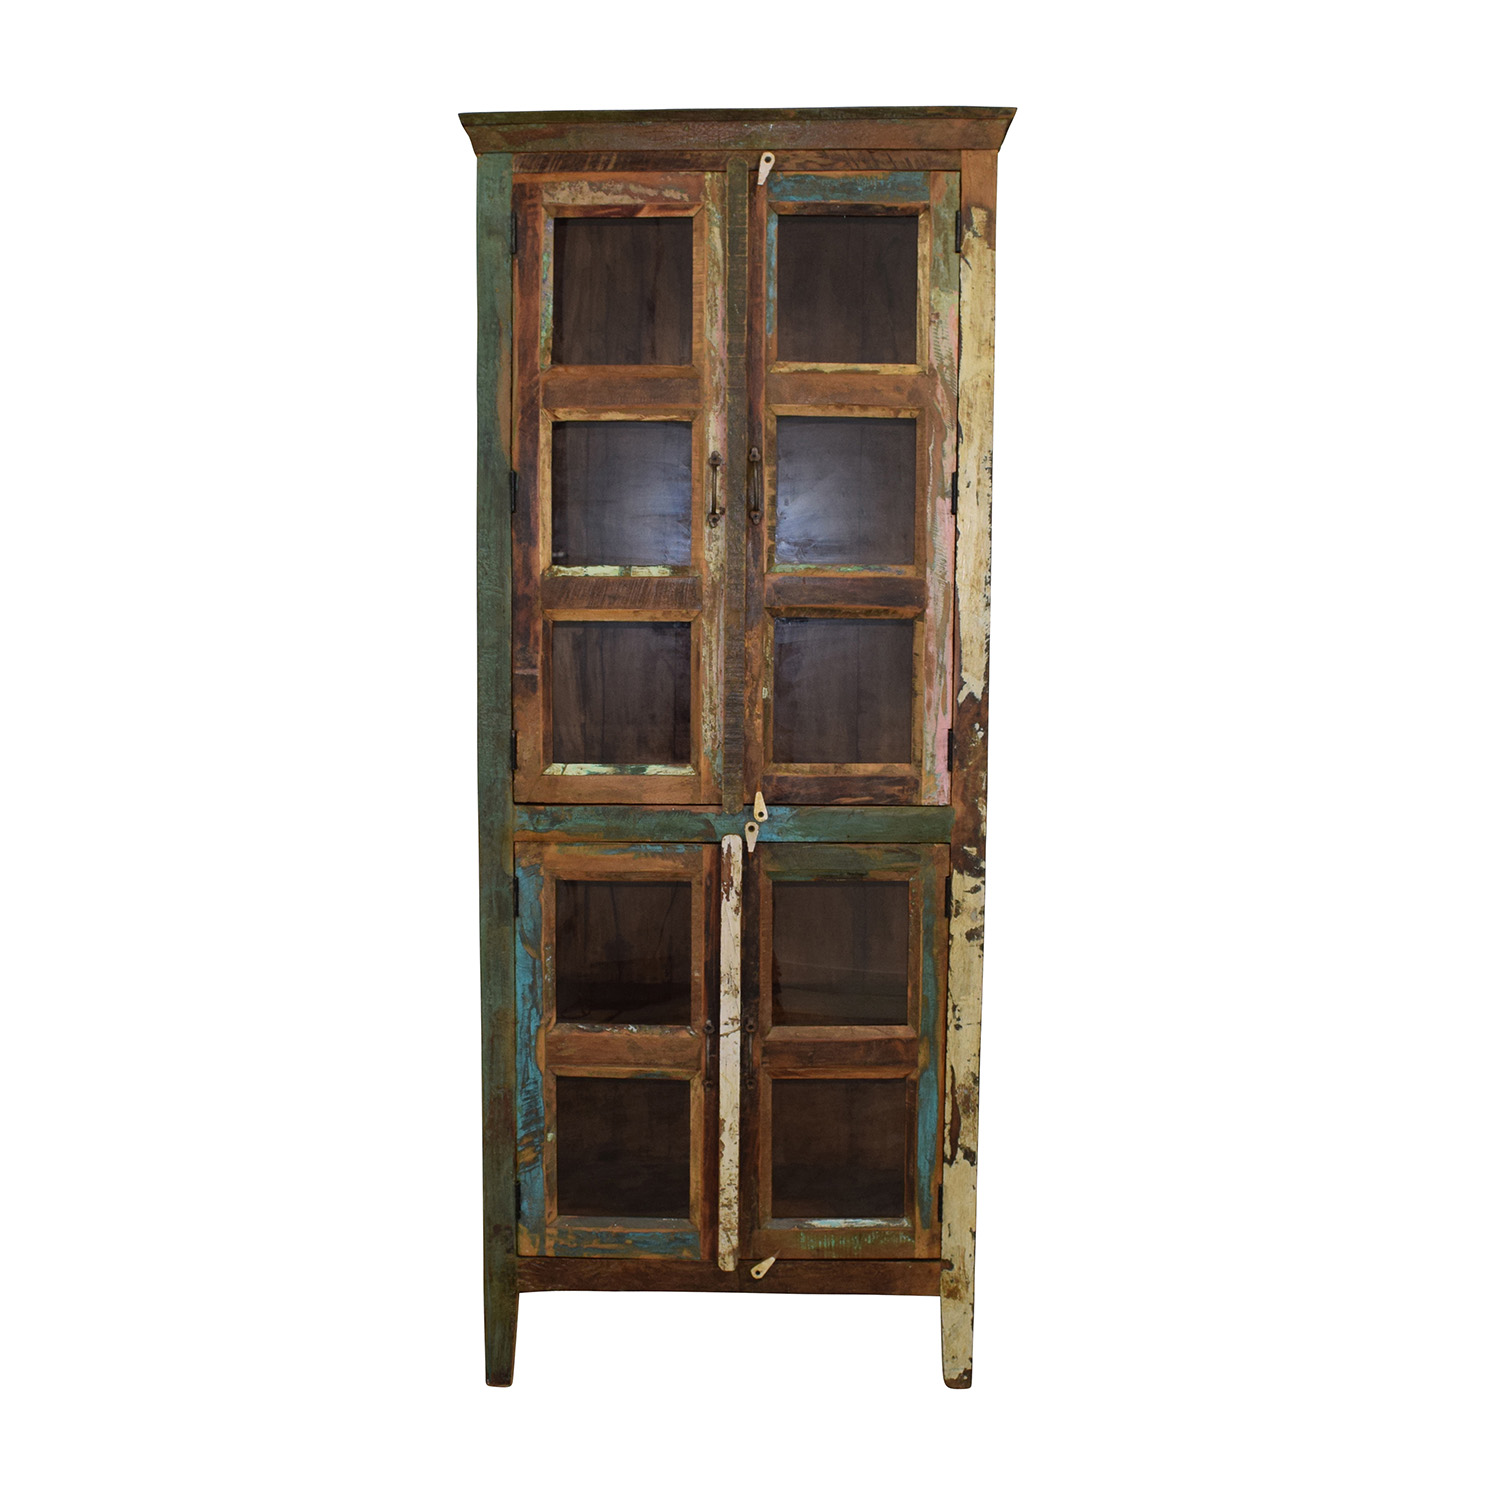 Vintage Rustic Armoire dimensions